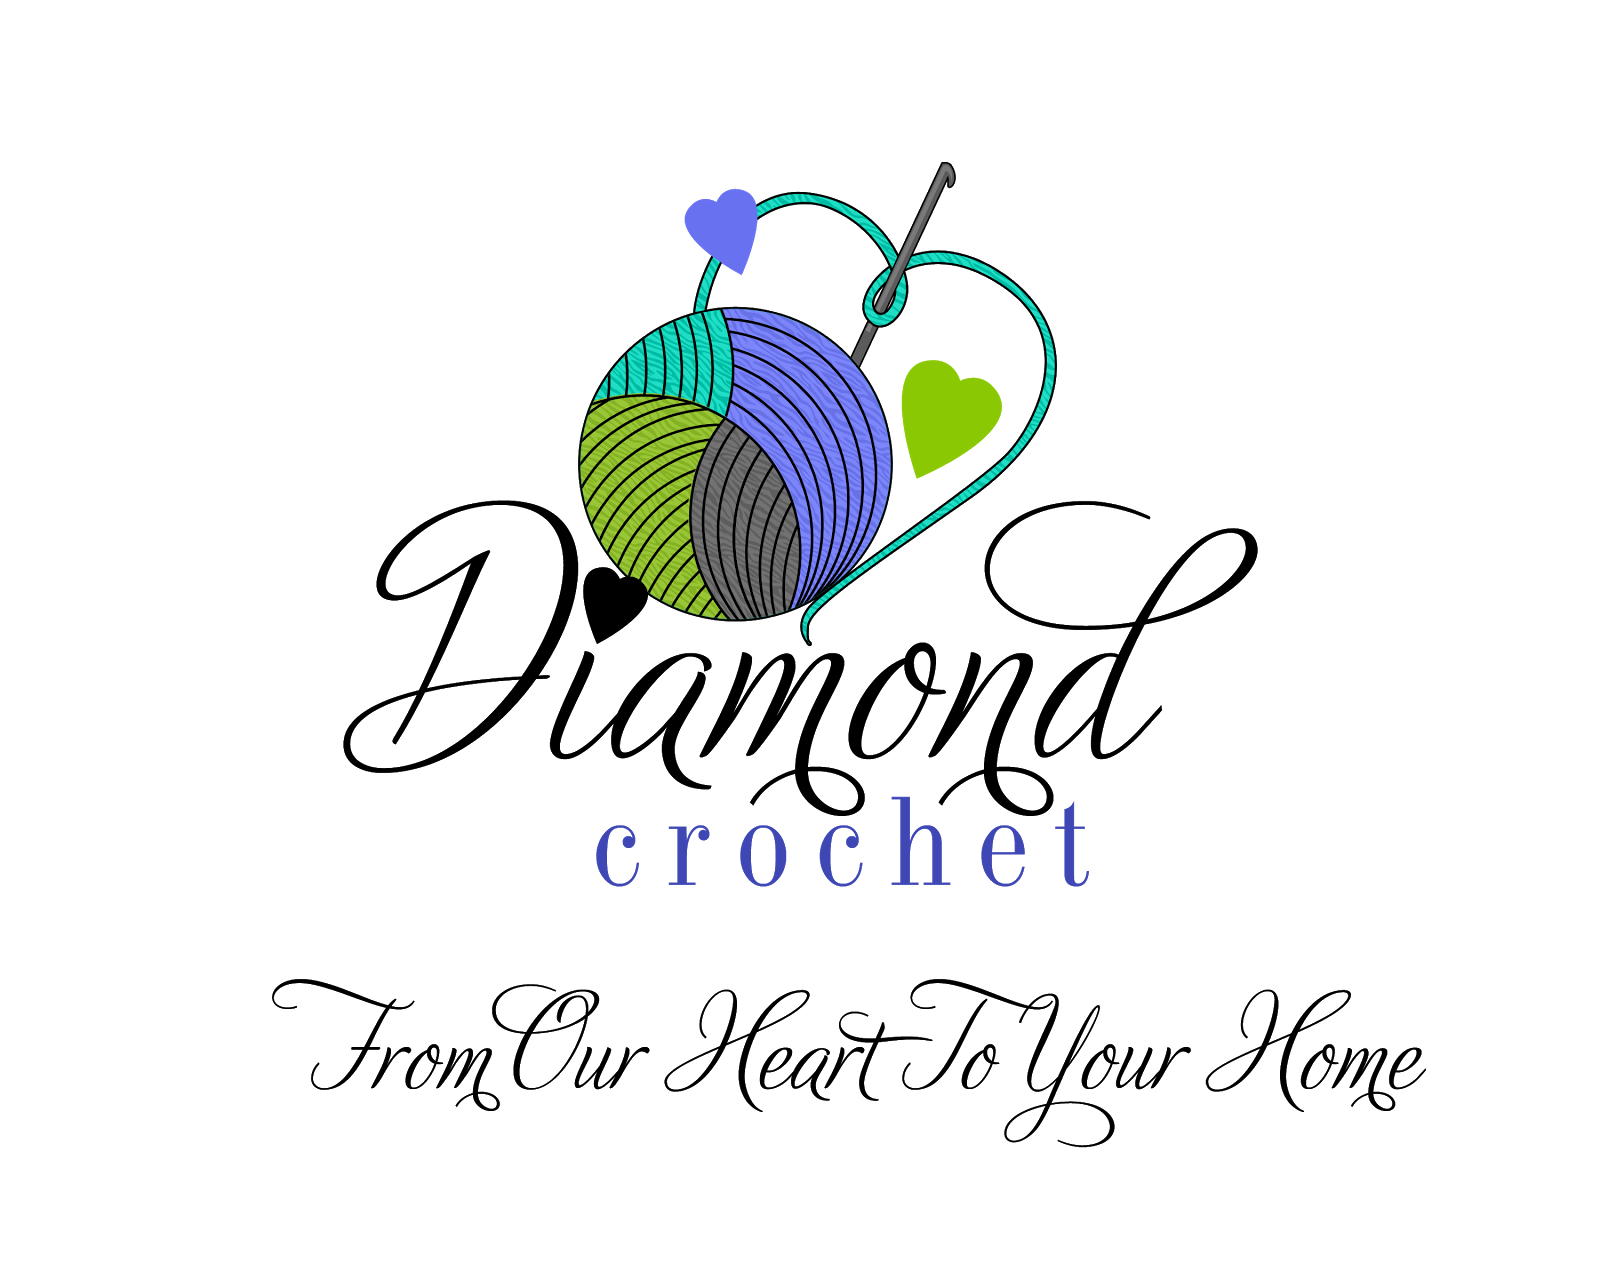 Logo Crochet : have had the chance to play with creating new patterns for preemie ...